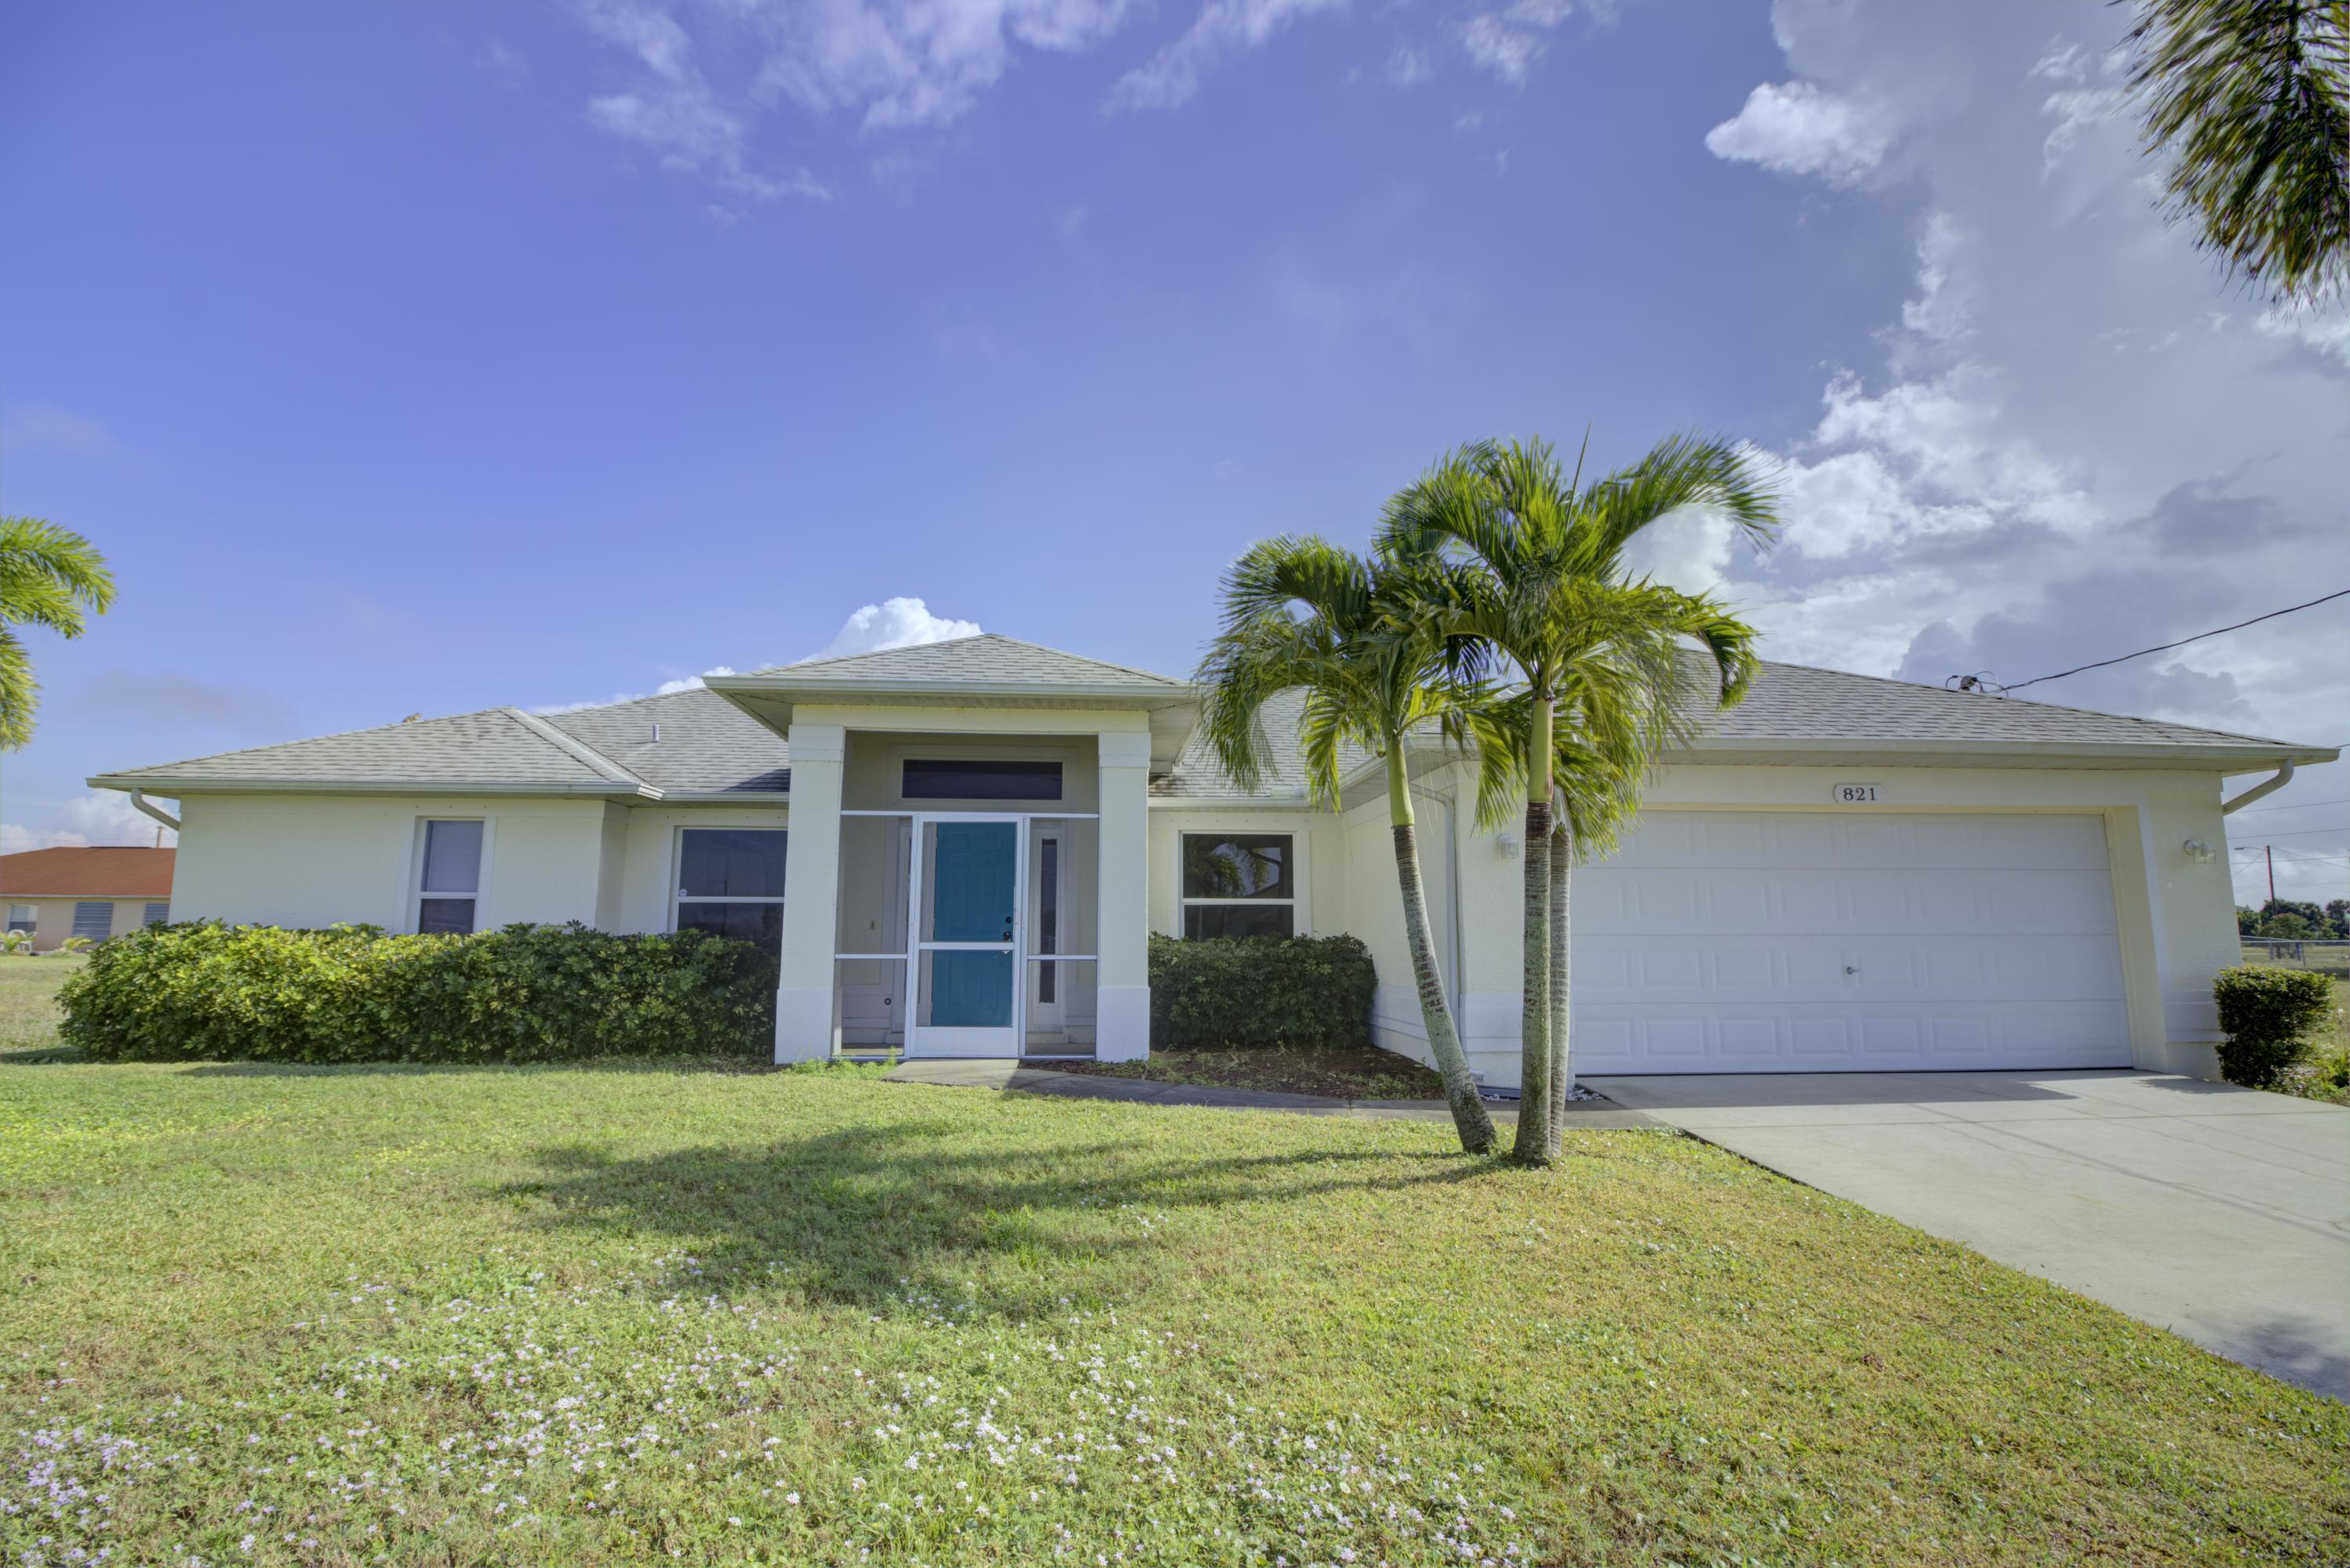 821 NW 20th Avenue, Cape Coral, Florida